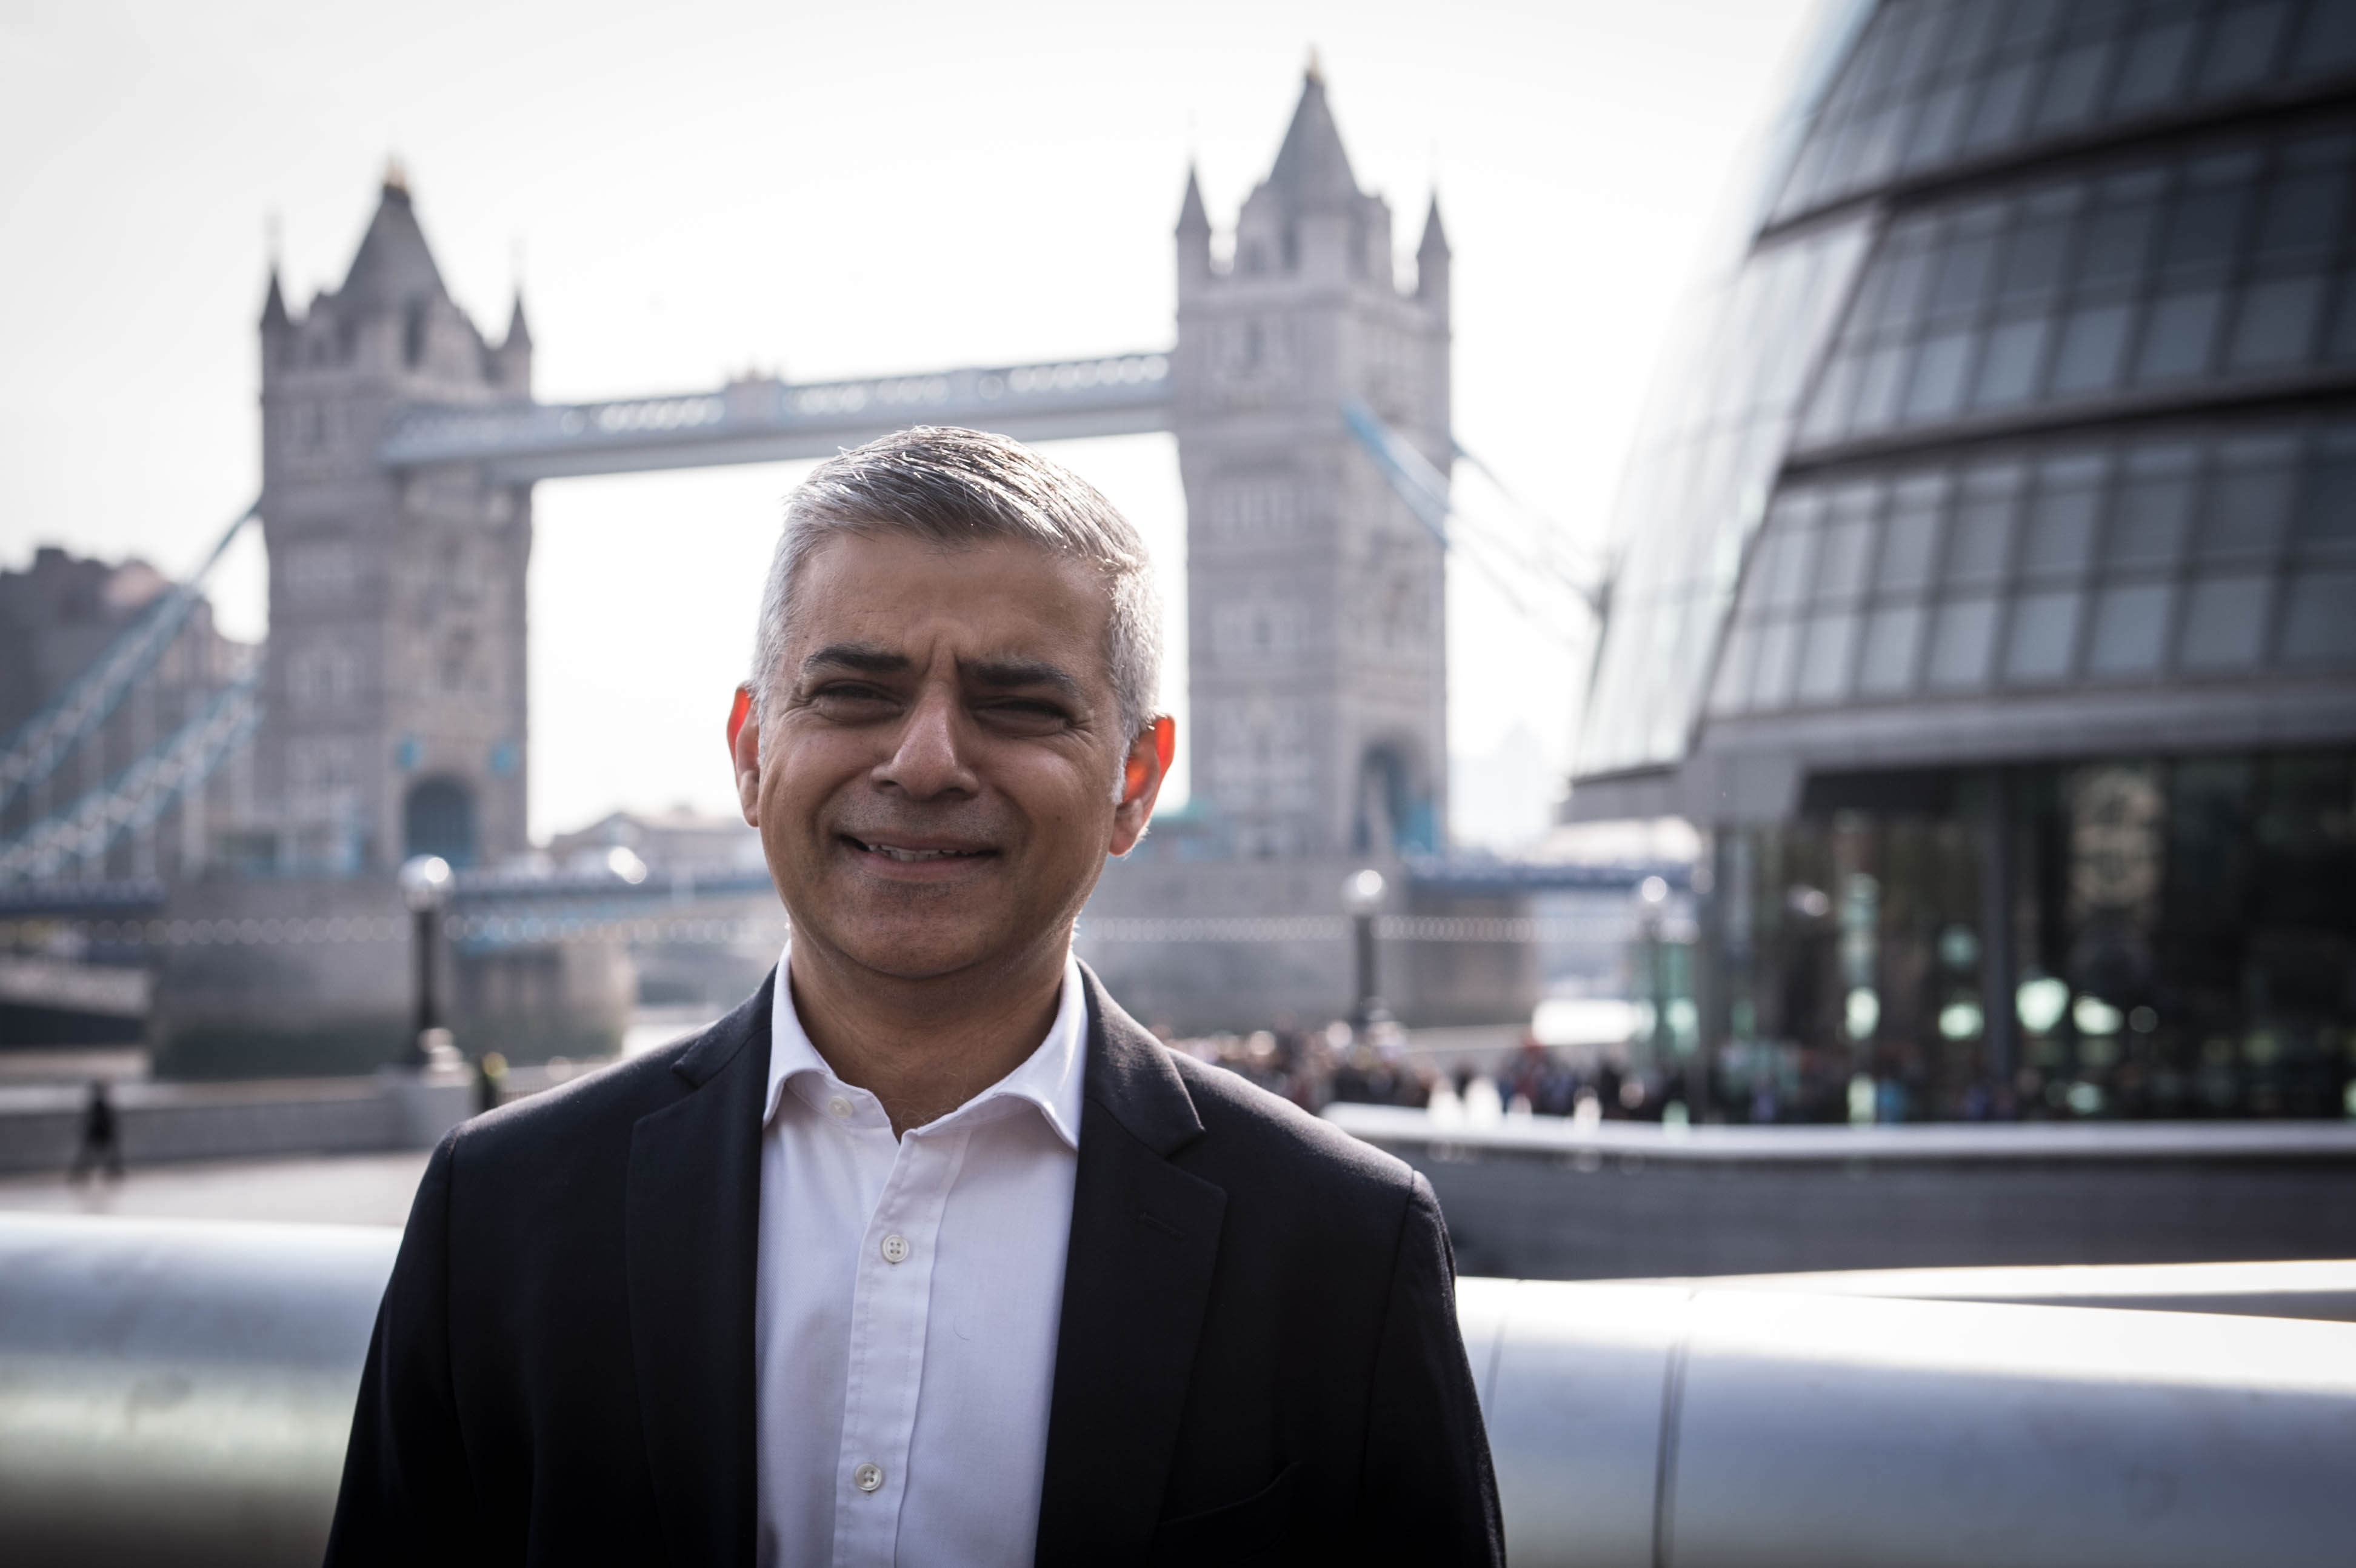 Donald Trump Challenges London Mayor To IQ Test PA 26277031